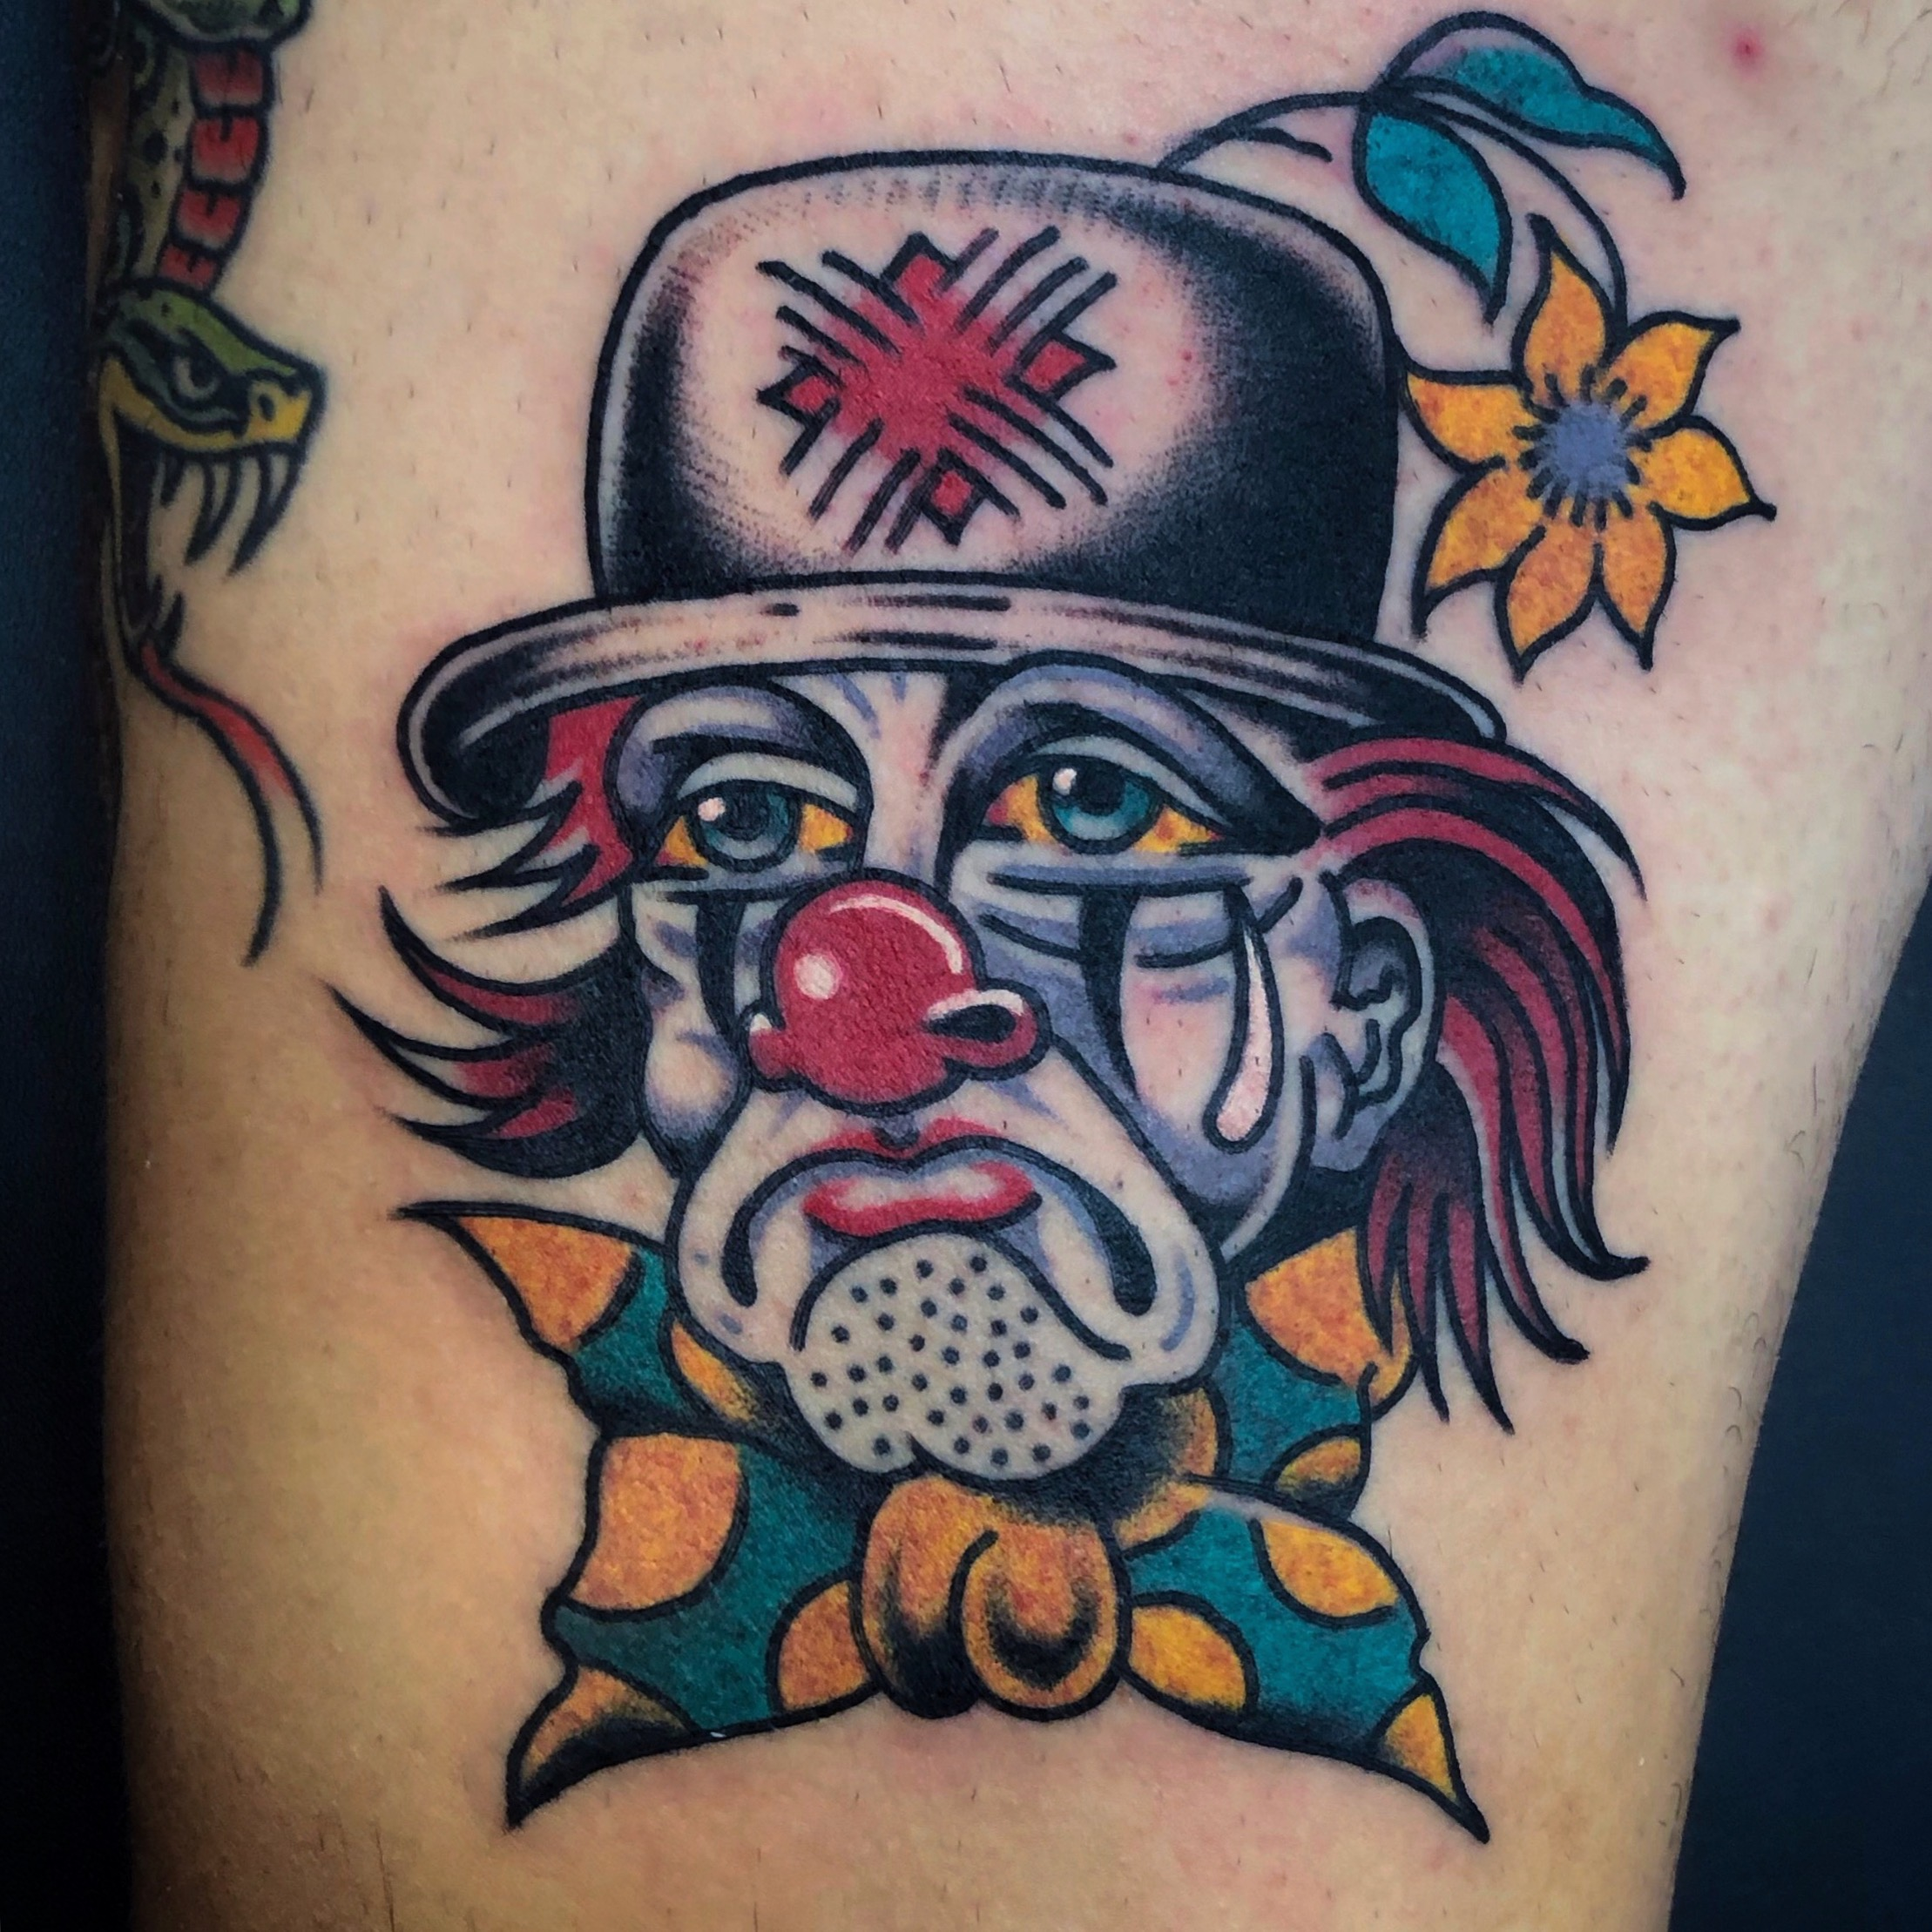 ClownTattoo.ChristianOtto.jpeg